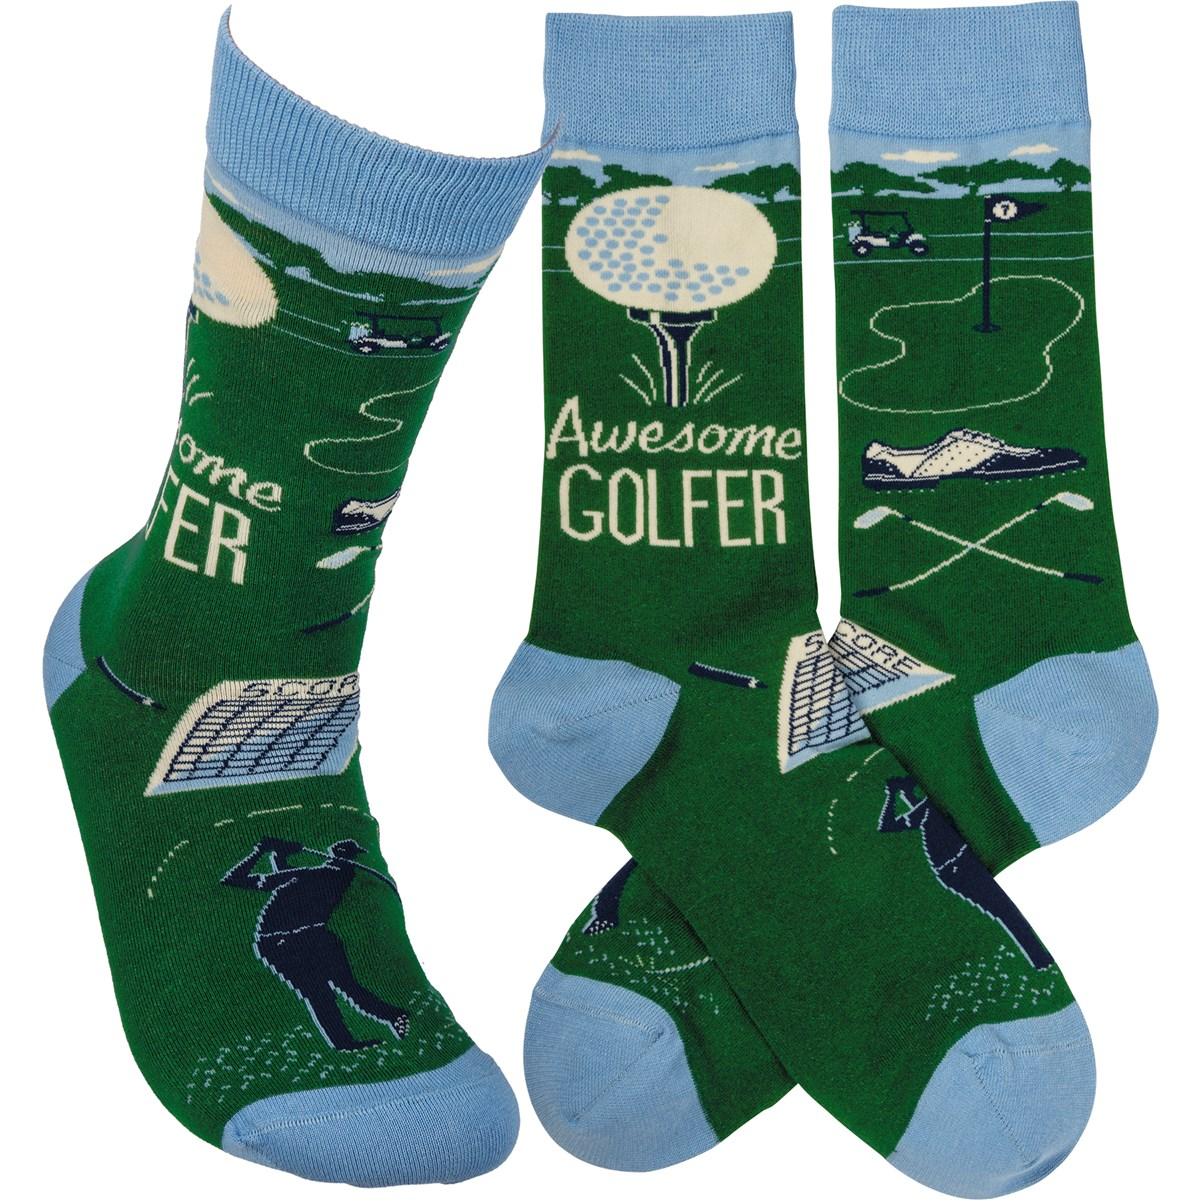 Socks - Awesome Golfer - One Size Fits Most - Cotton, Nylon, Spandex